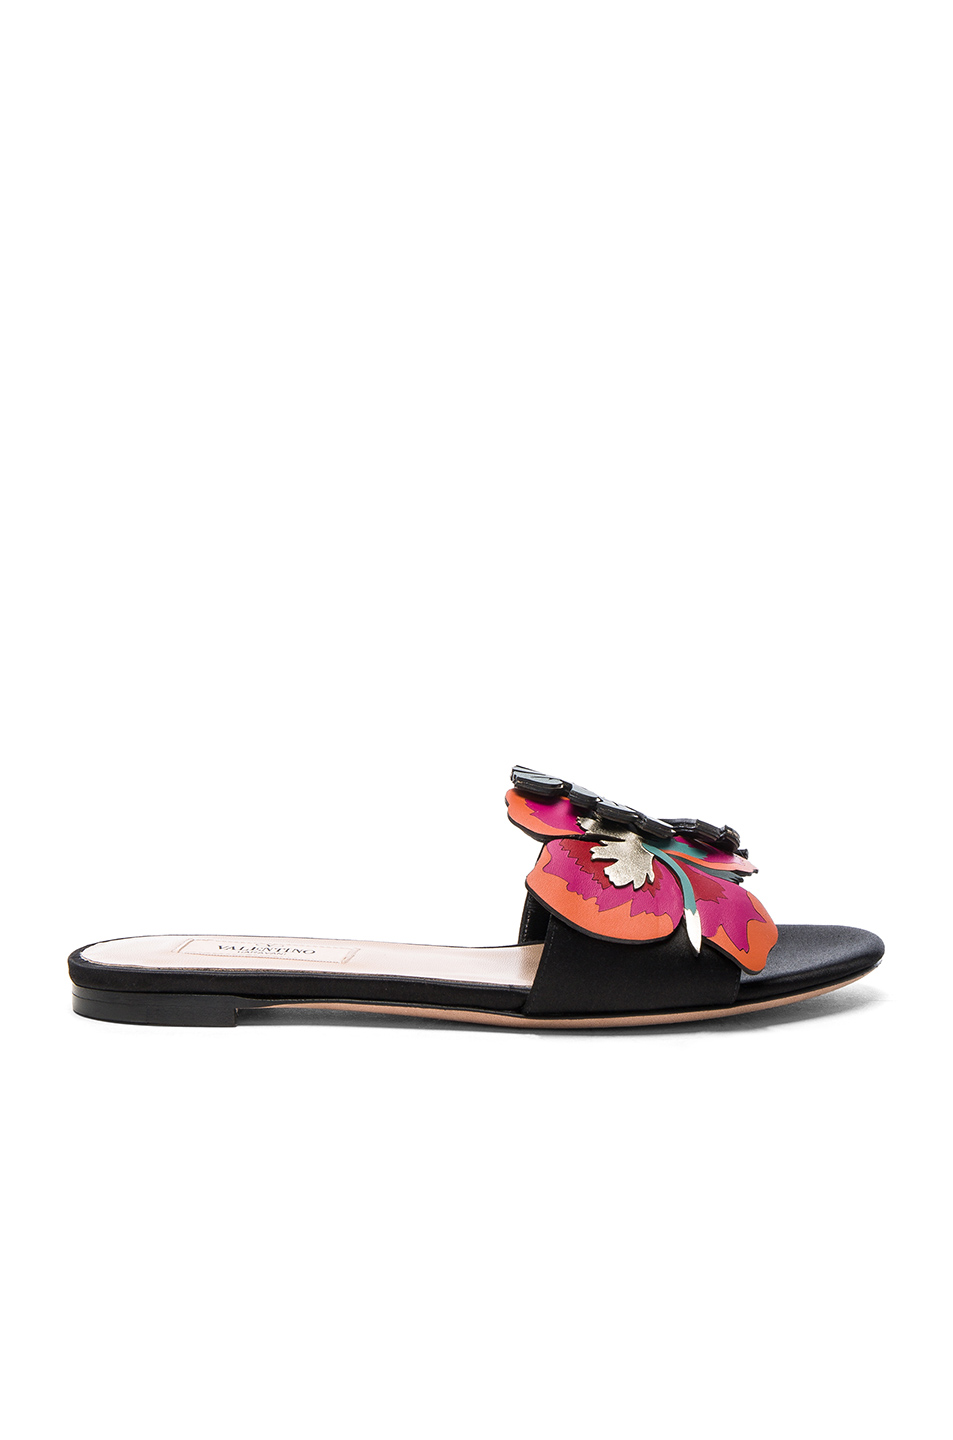 Valentino Leather Tropical Dream Slides in Floral,Black